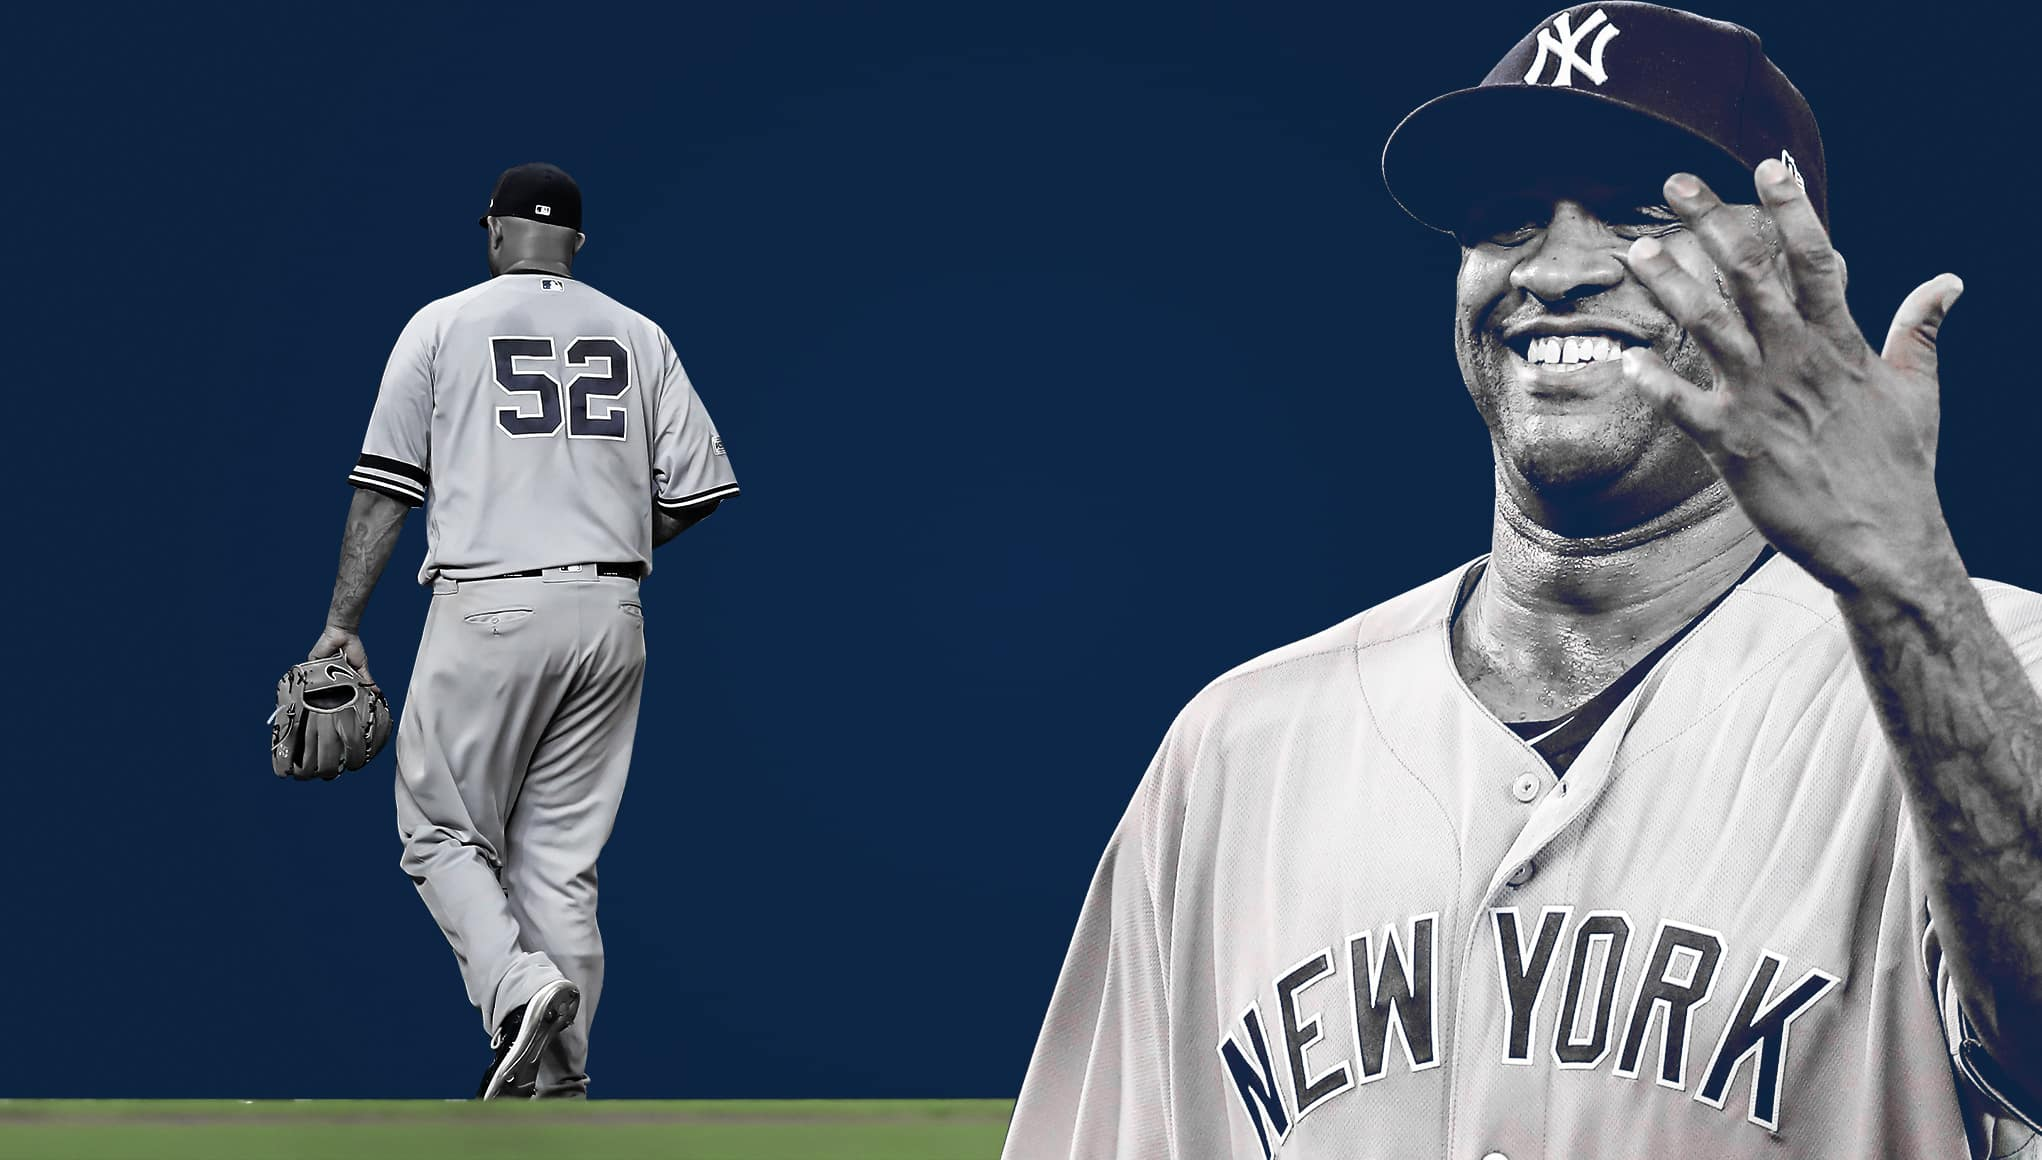 New York Yankees  CC Sabathia s swan song will be worth every penny 82ab9e0a9f